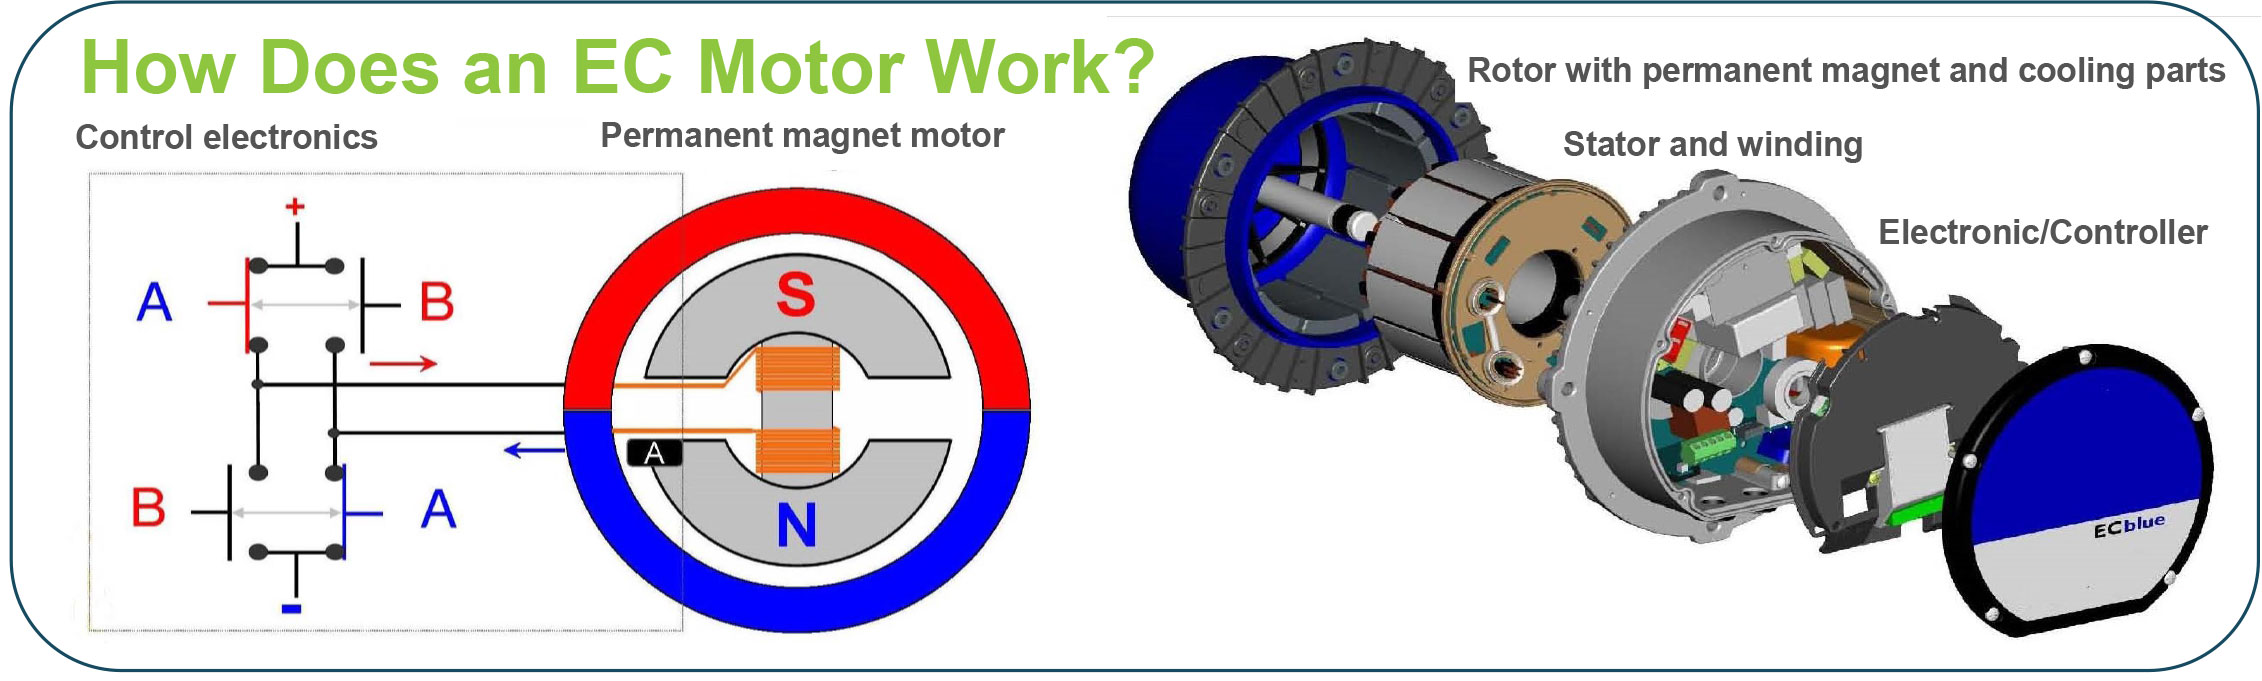 Why Are Ec Motors More Efficient Than Ac